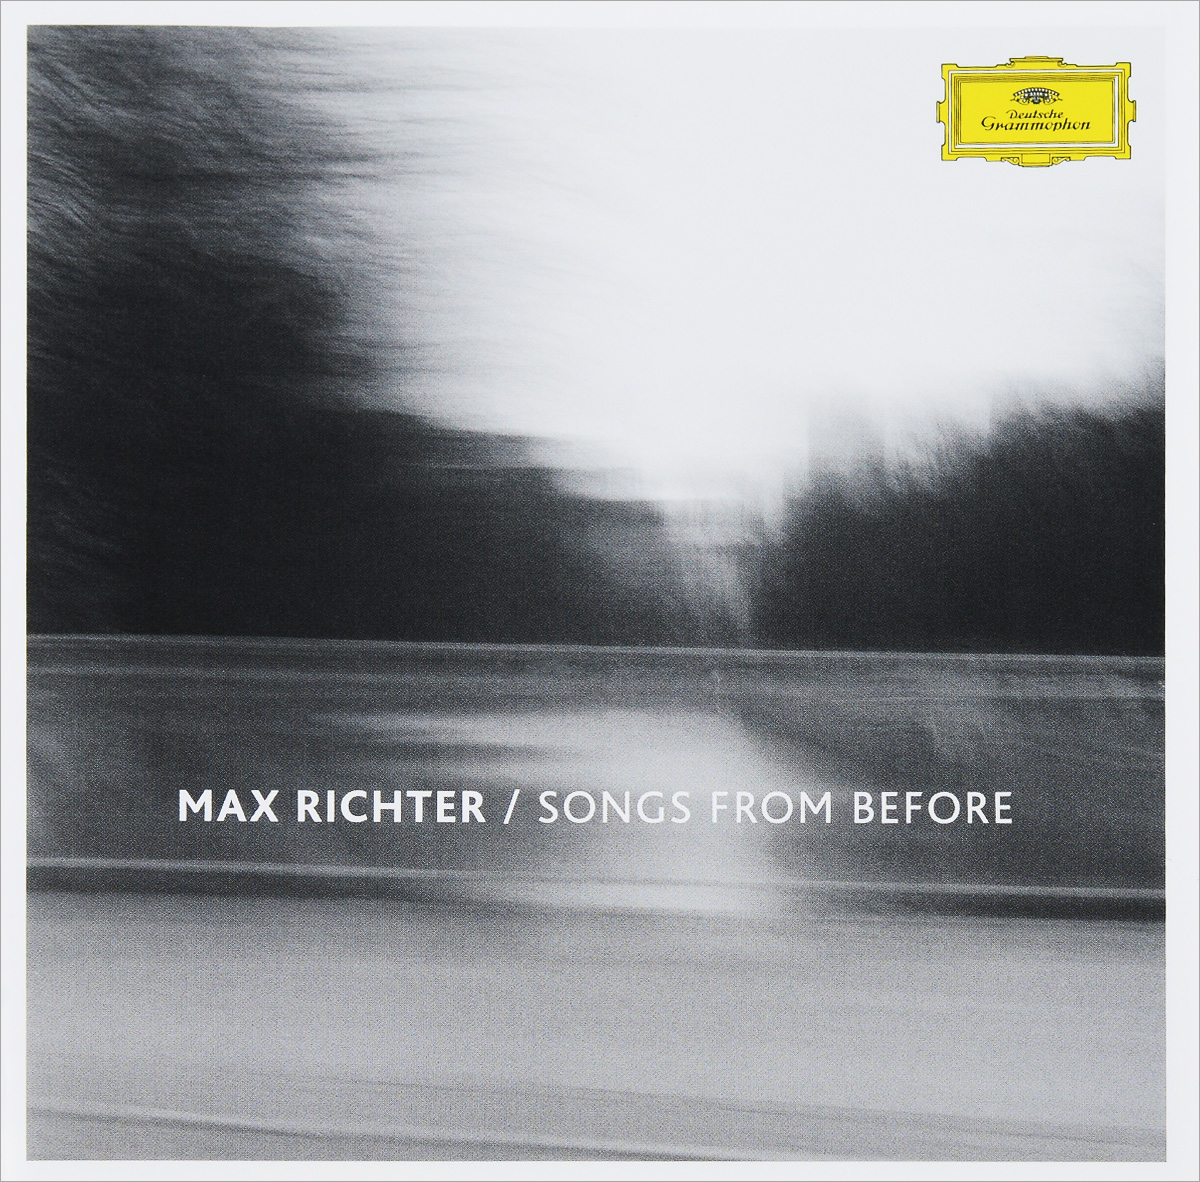 Max Richter. Songs From Before. Луиза Фуллер,Наталья Боннер,Джон Меткалф,Ян Бурге,Крис Ворсеу